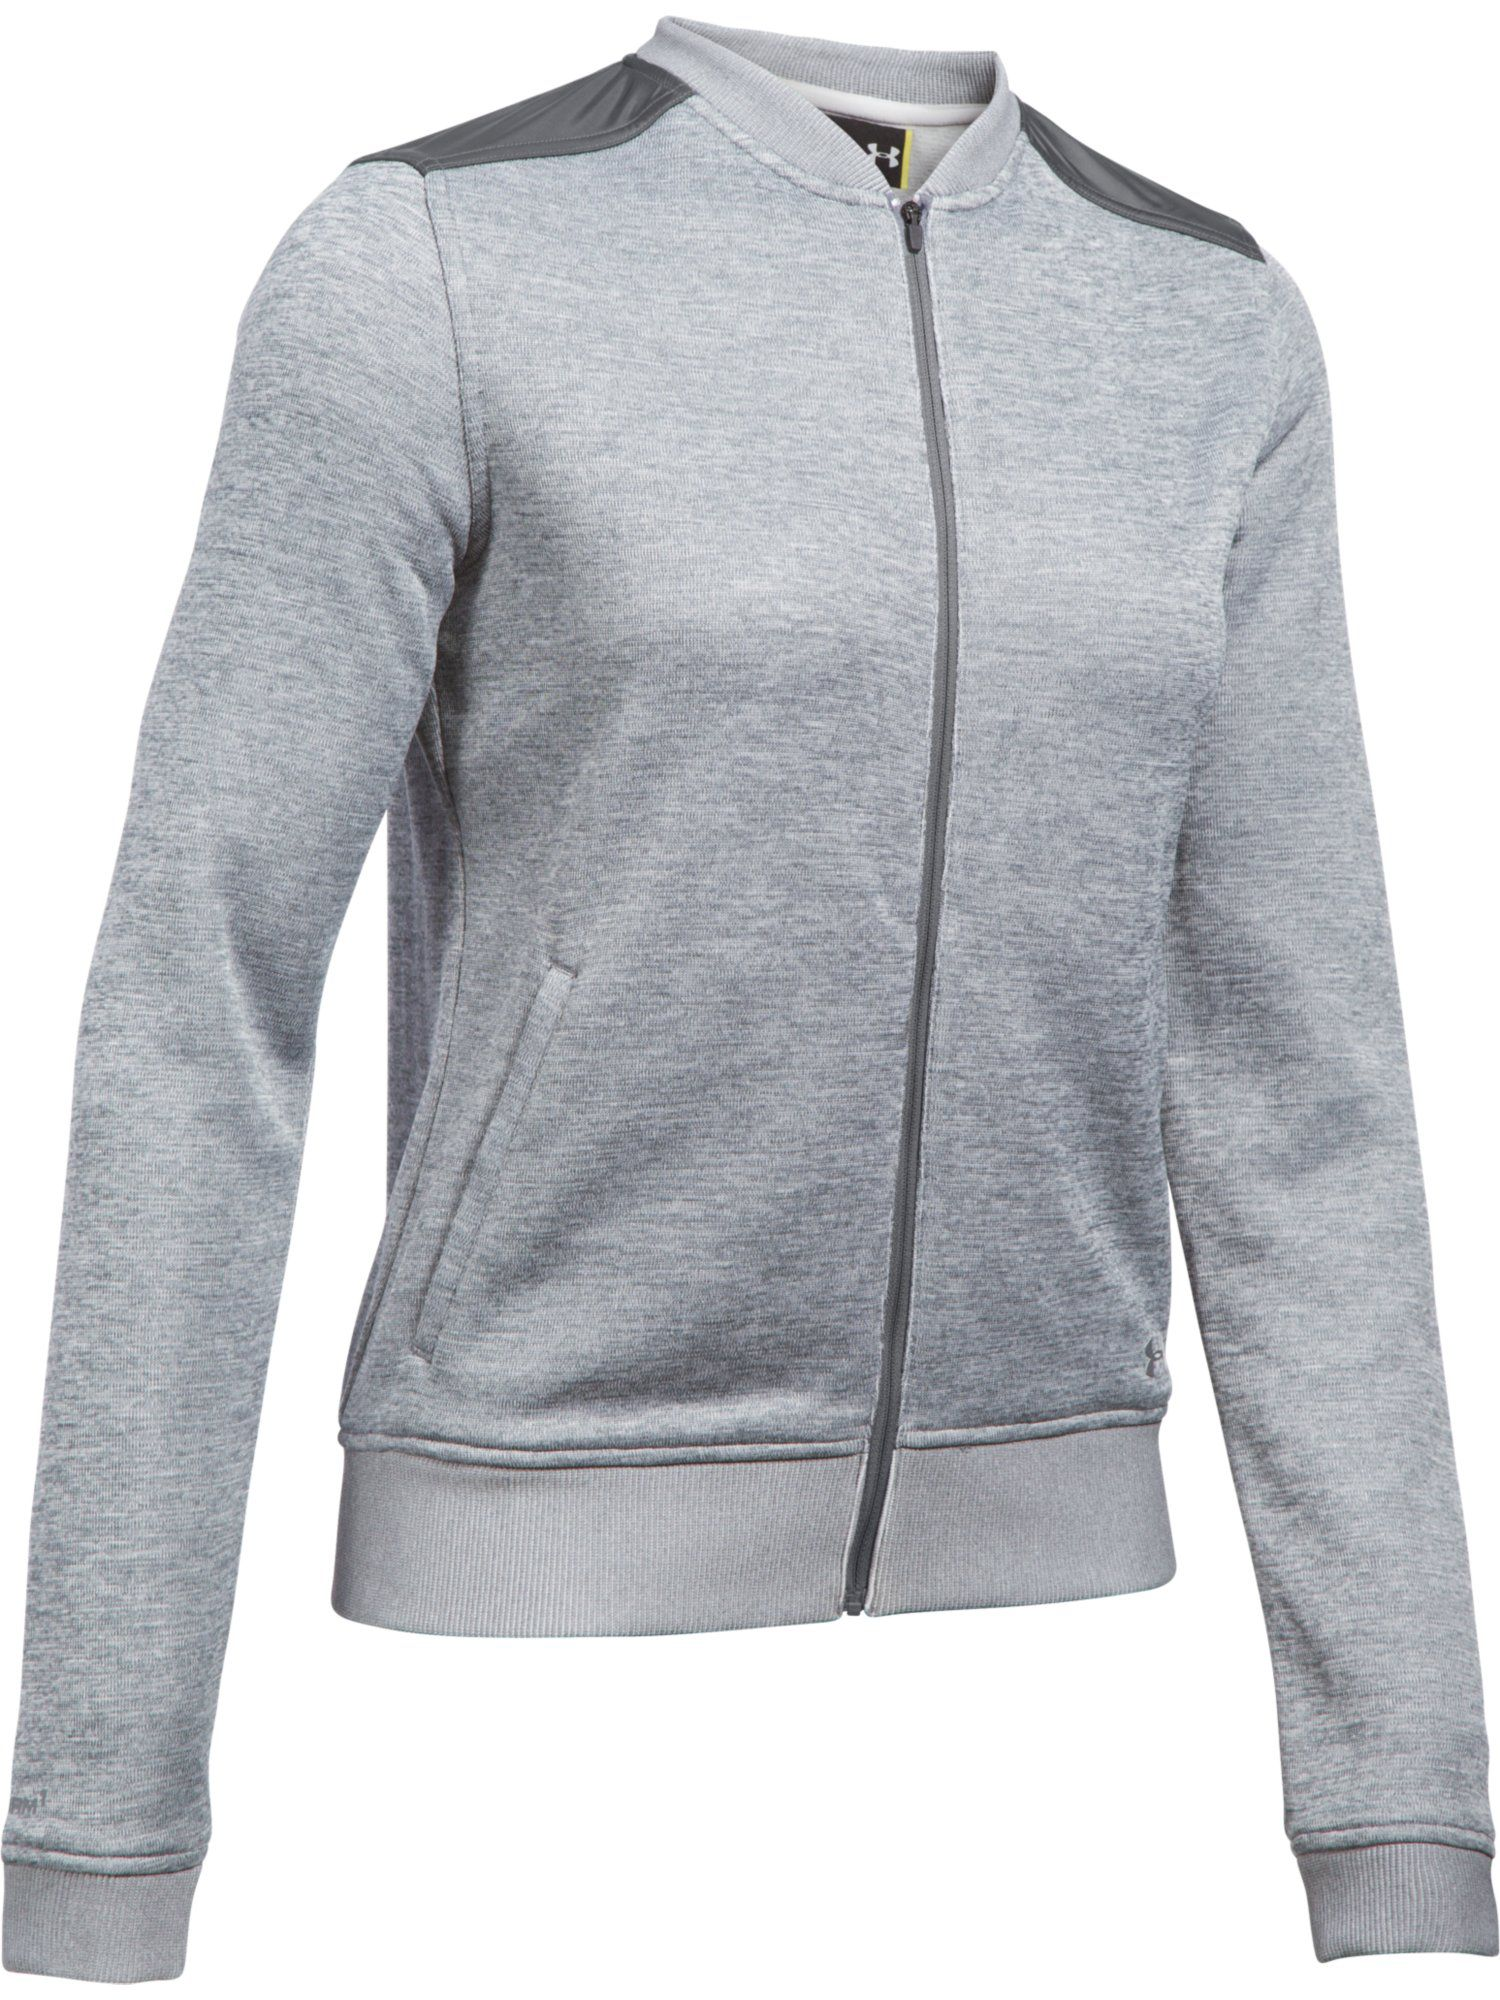 Under Armour Storm Sweaterfleece Jacket, Grey